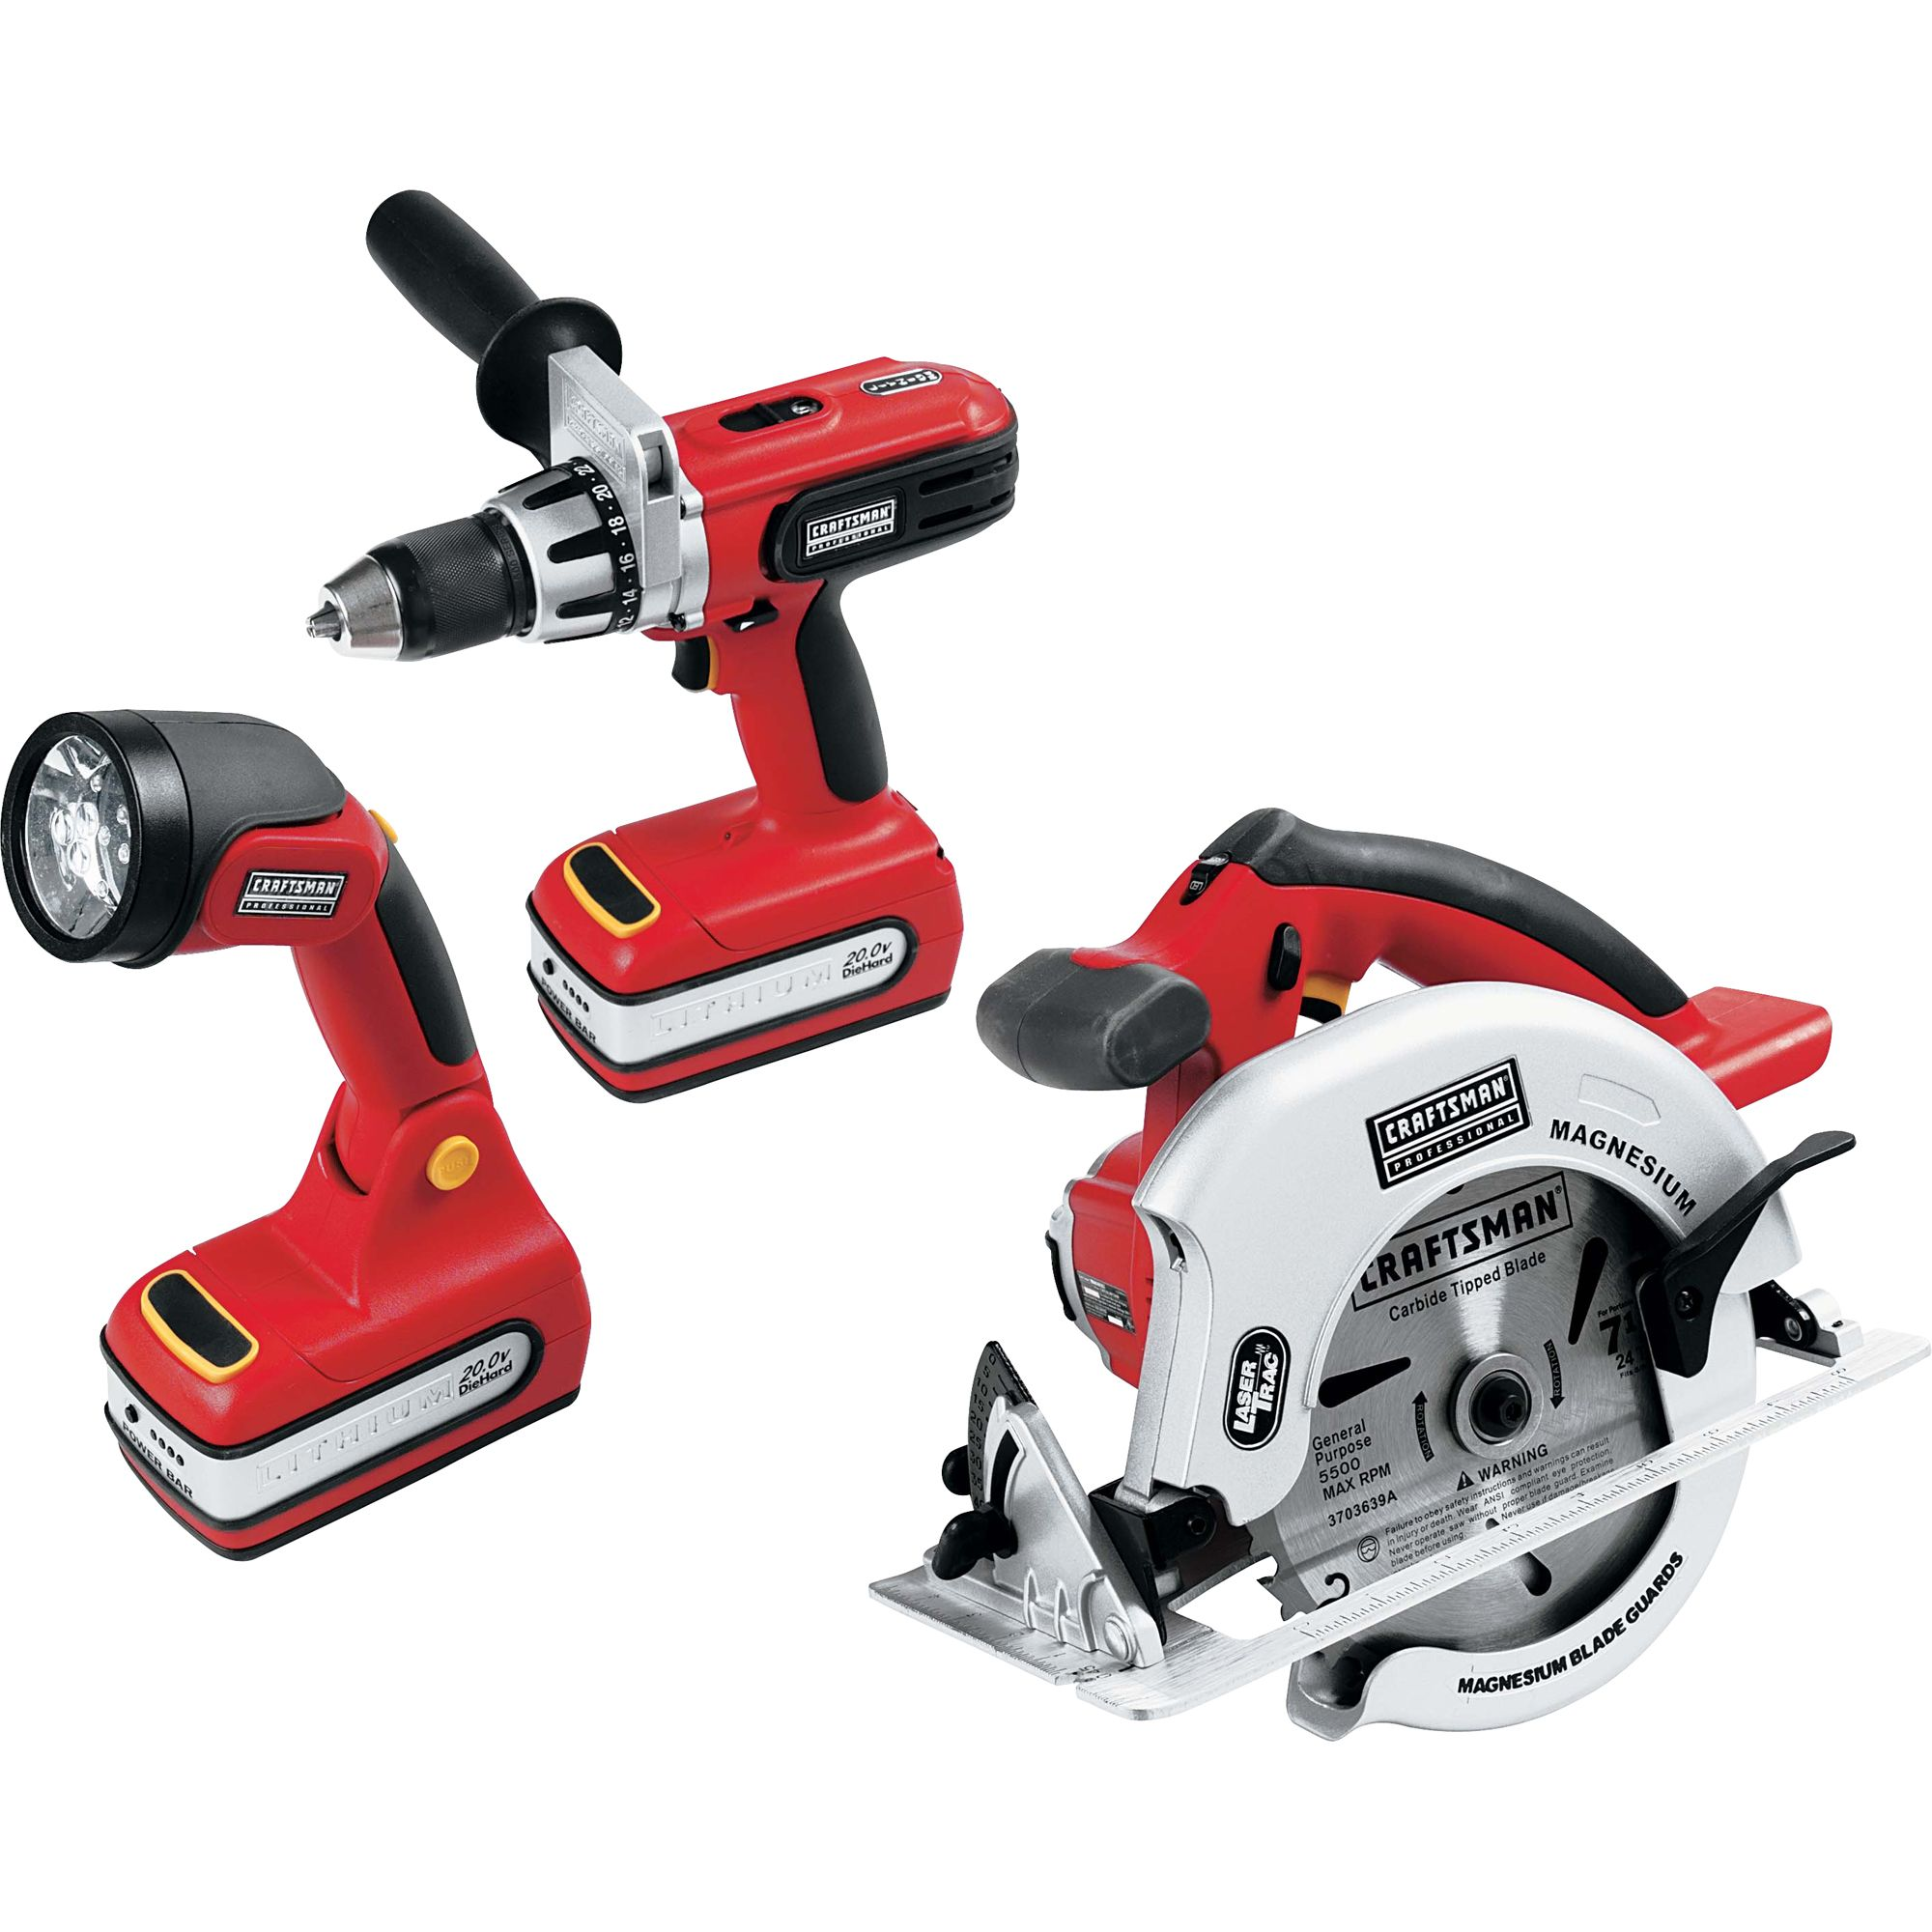 Craftsman 26325 20 Volt Lithium Ion Cordless 3 Tool Combo Kit Drill Driver Circular Saw Led Worklight Red Craftsman Power Tools Craftsman Tools Combo Kit